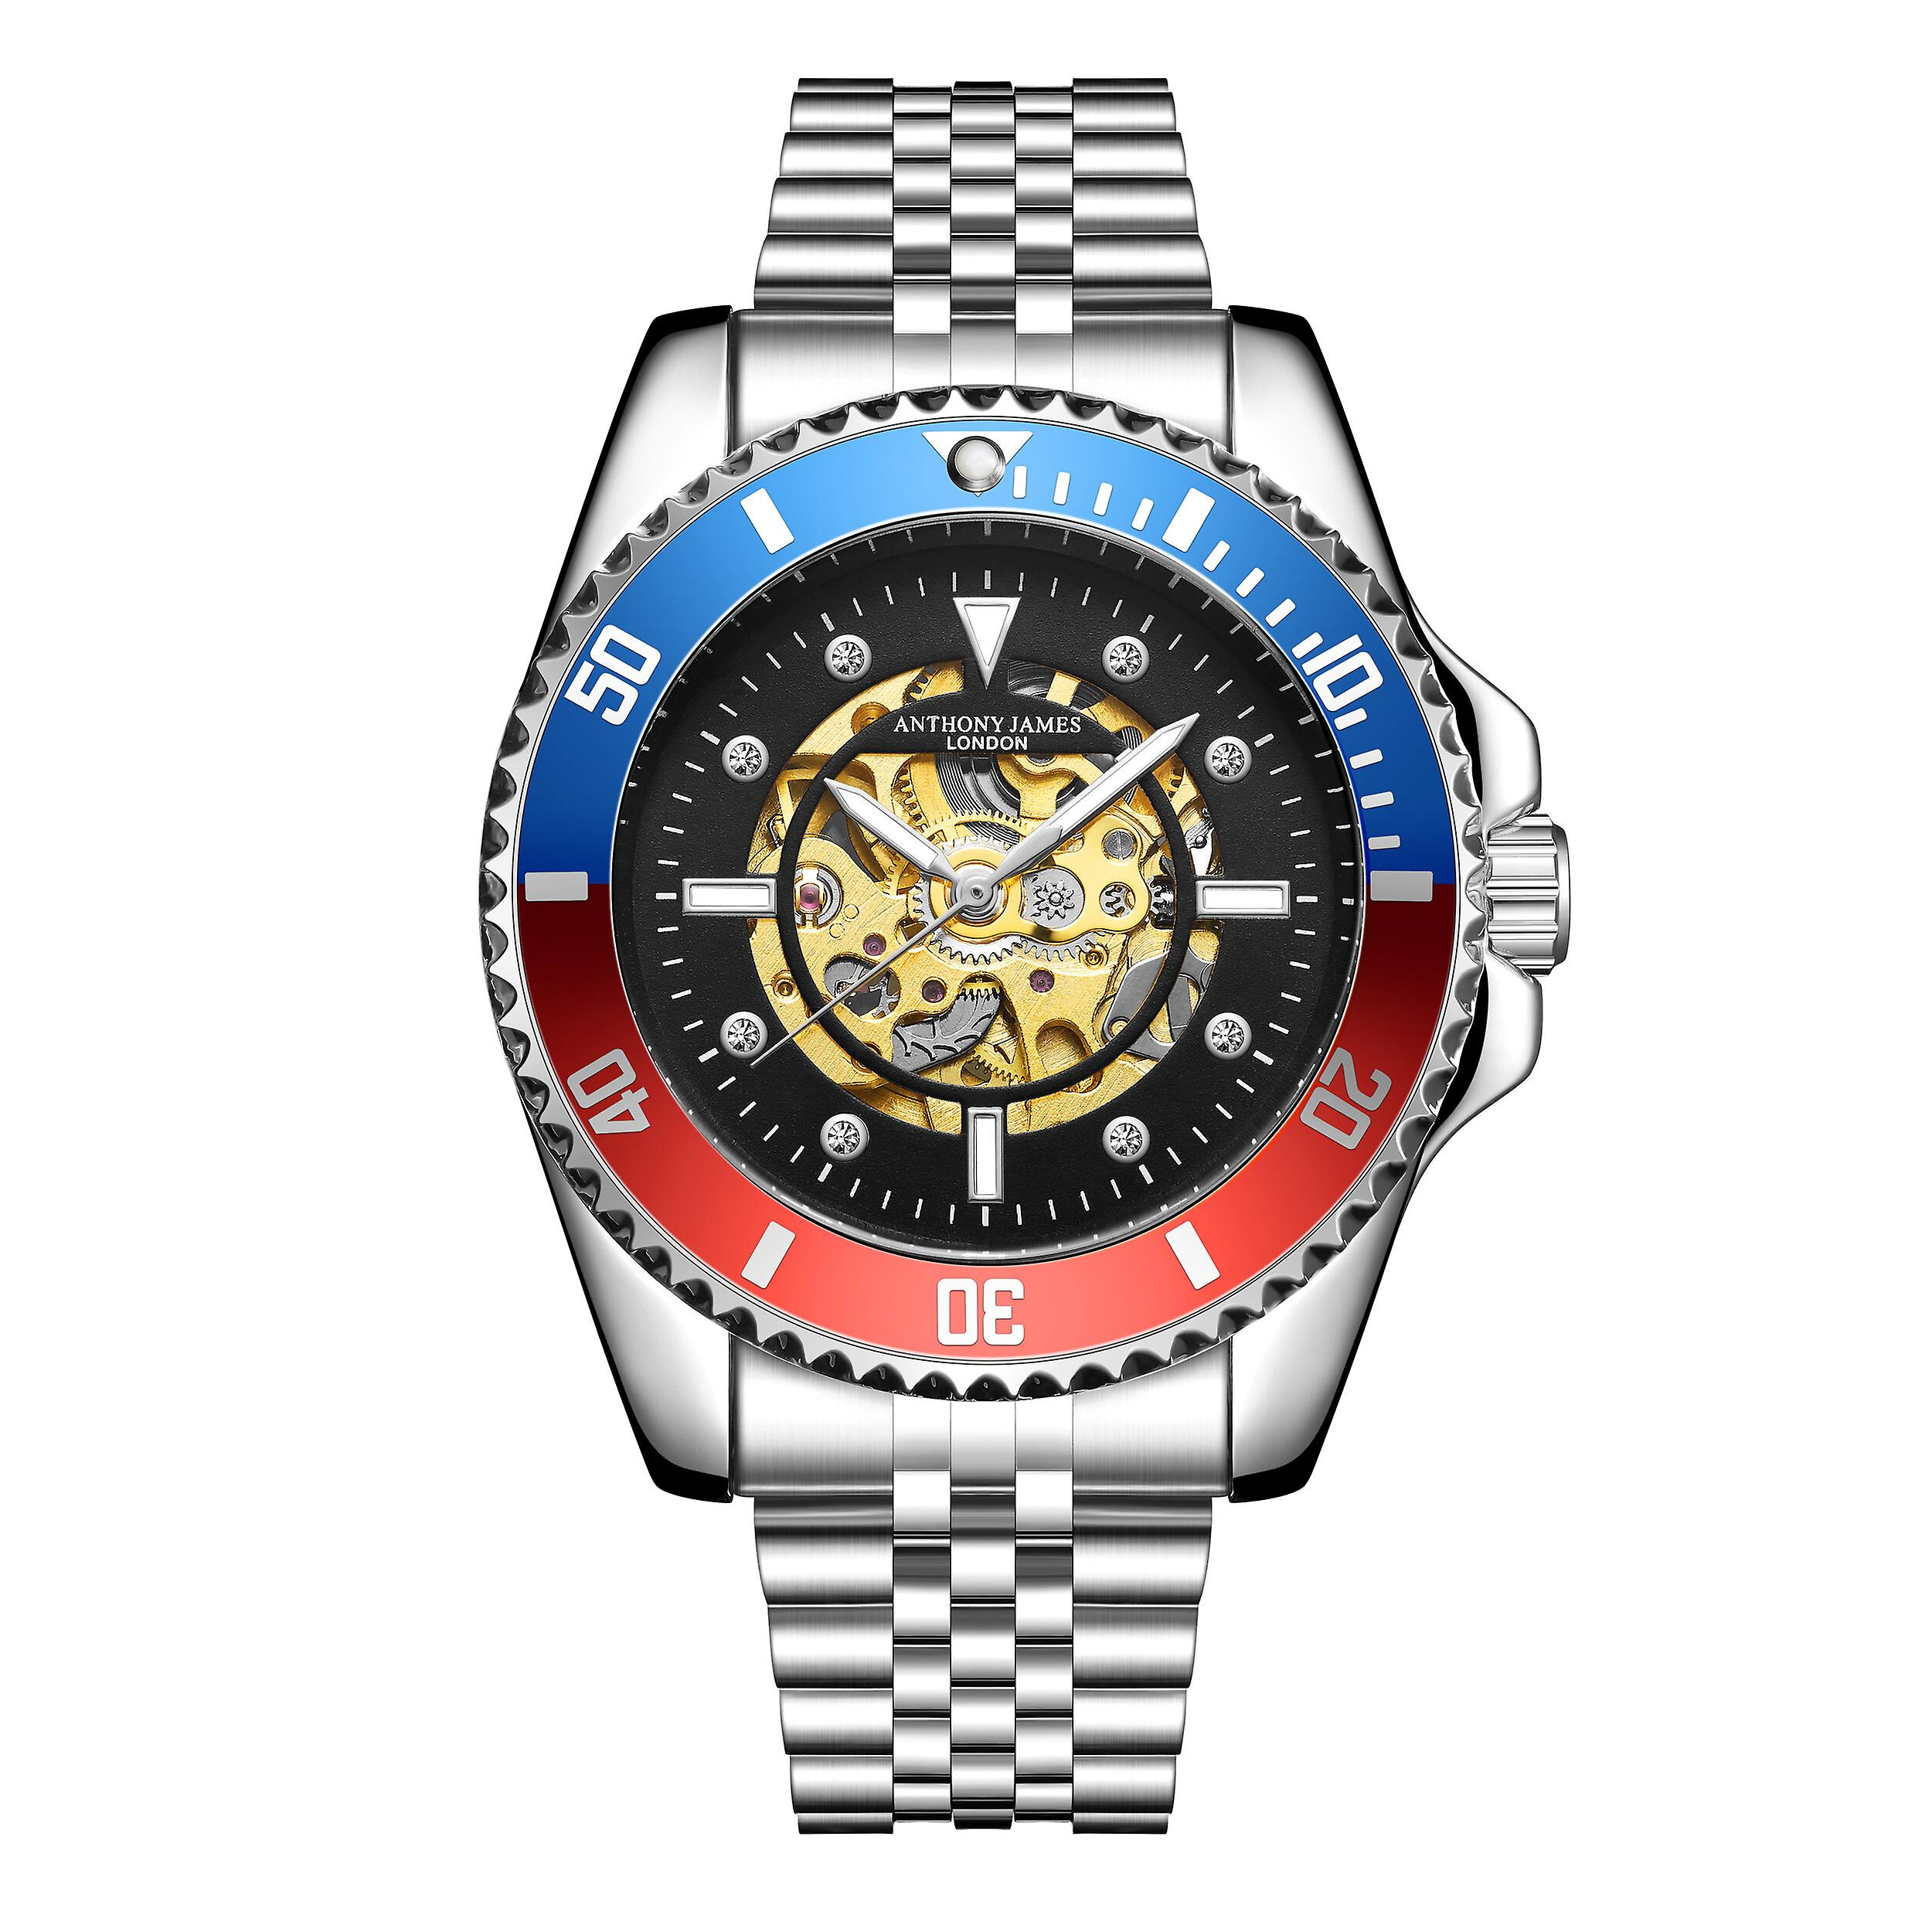 Anthony James Limited Edition Skeleton Sports Automatic Watch